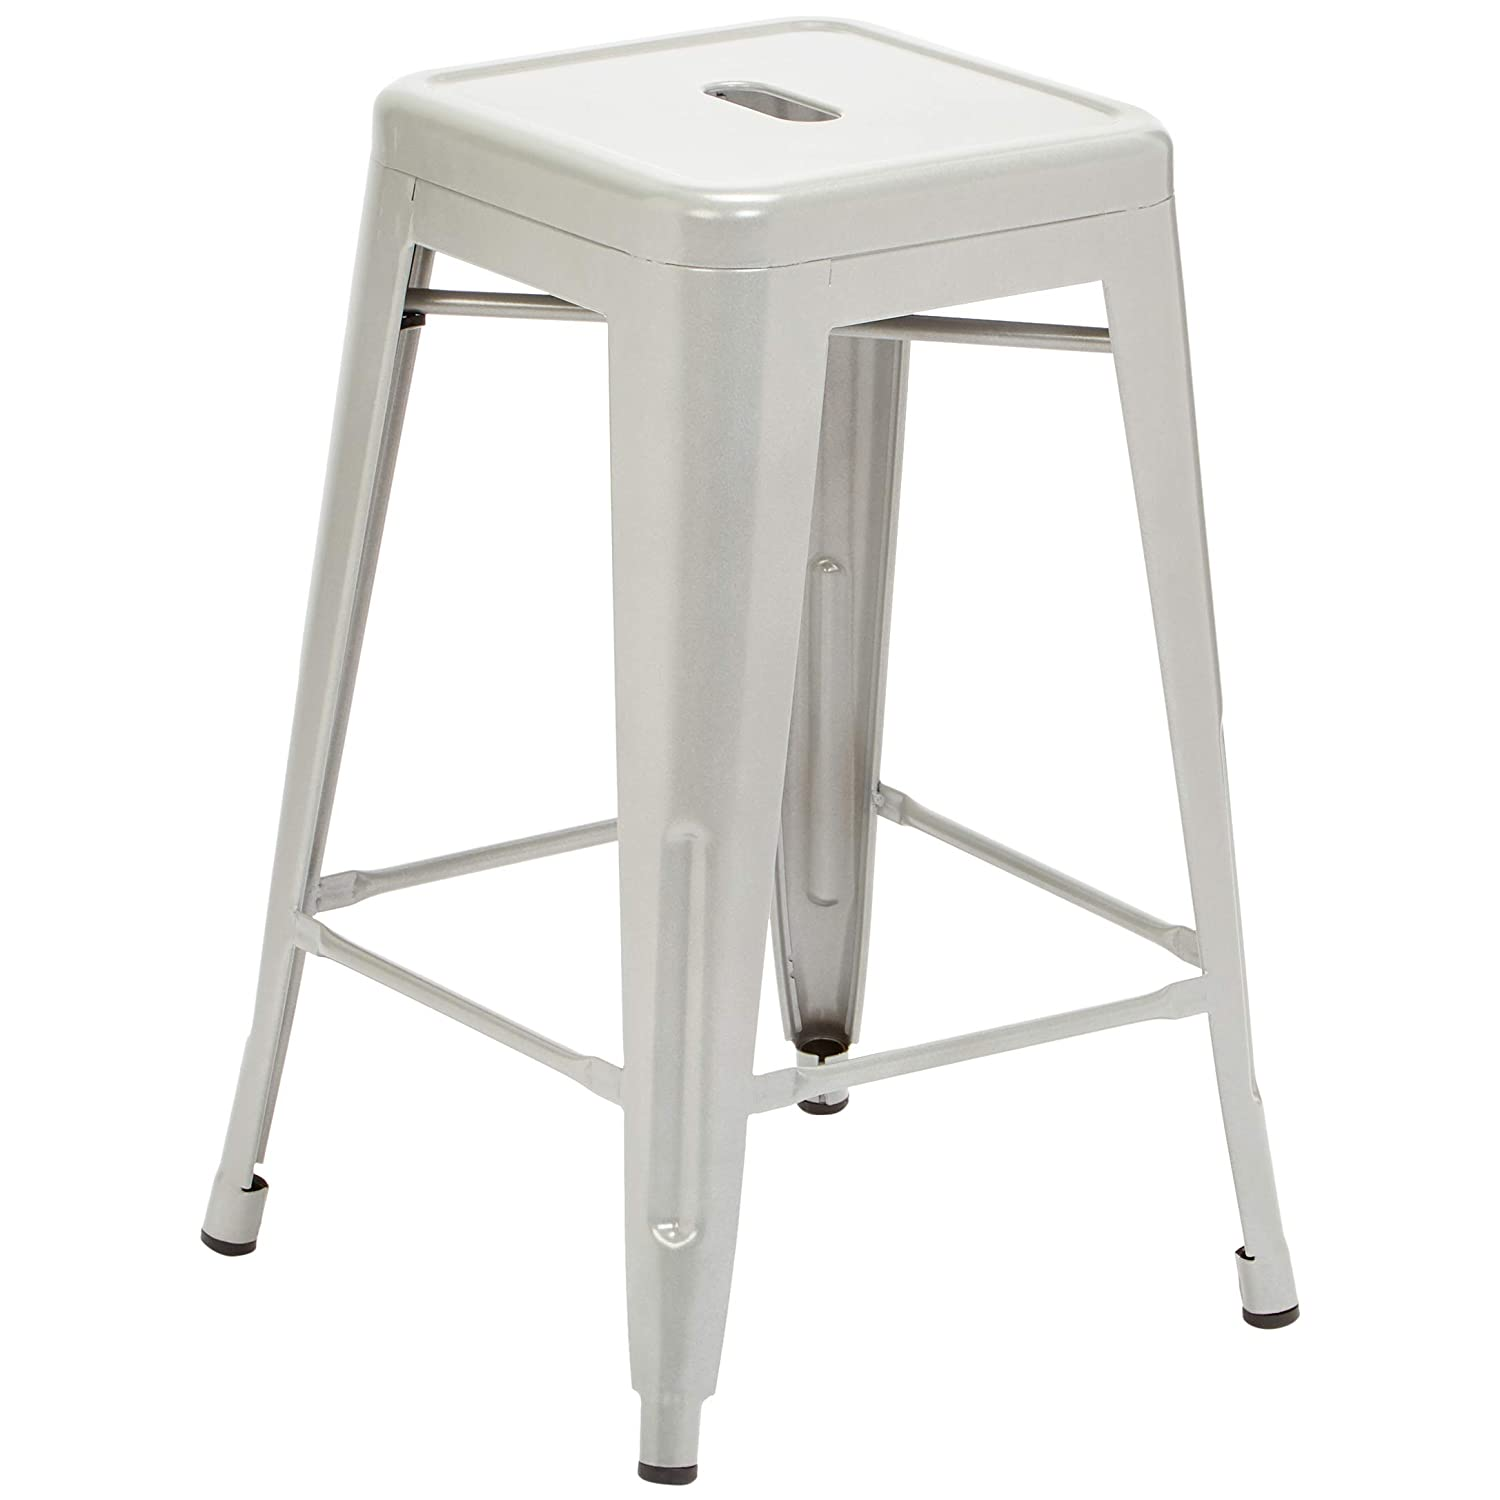 Silver Ice Pioneer Square Haley 24-Inch Backless Square-Seated Counter-Height Metal Stool Set of 4